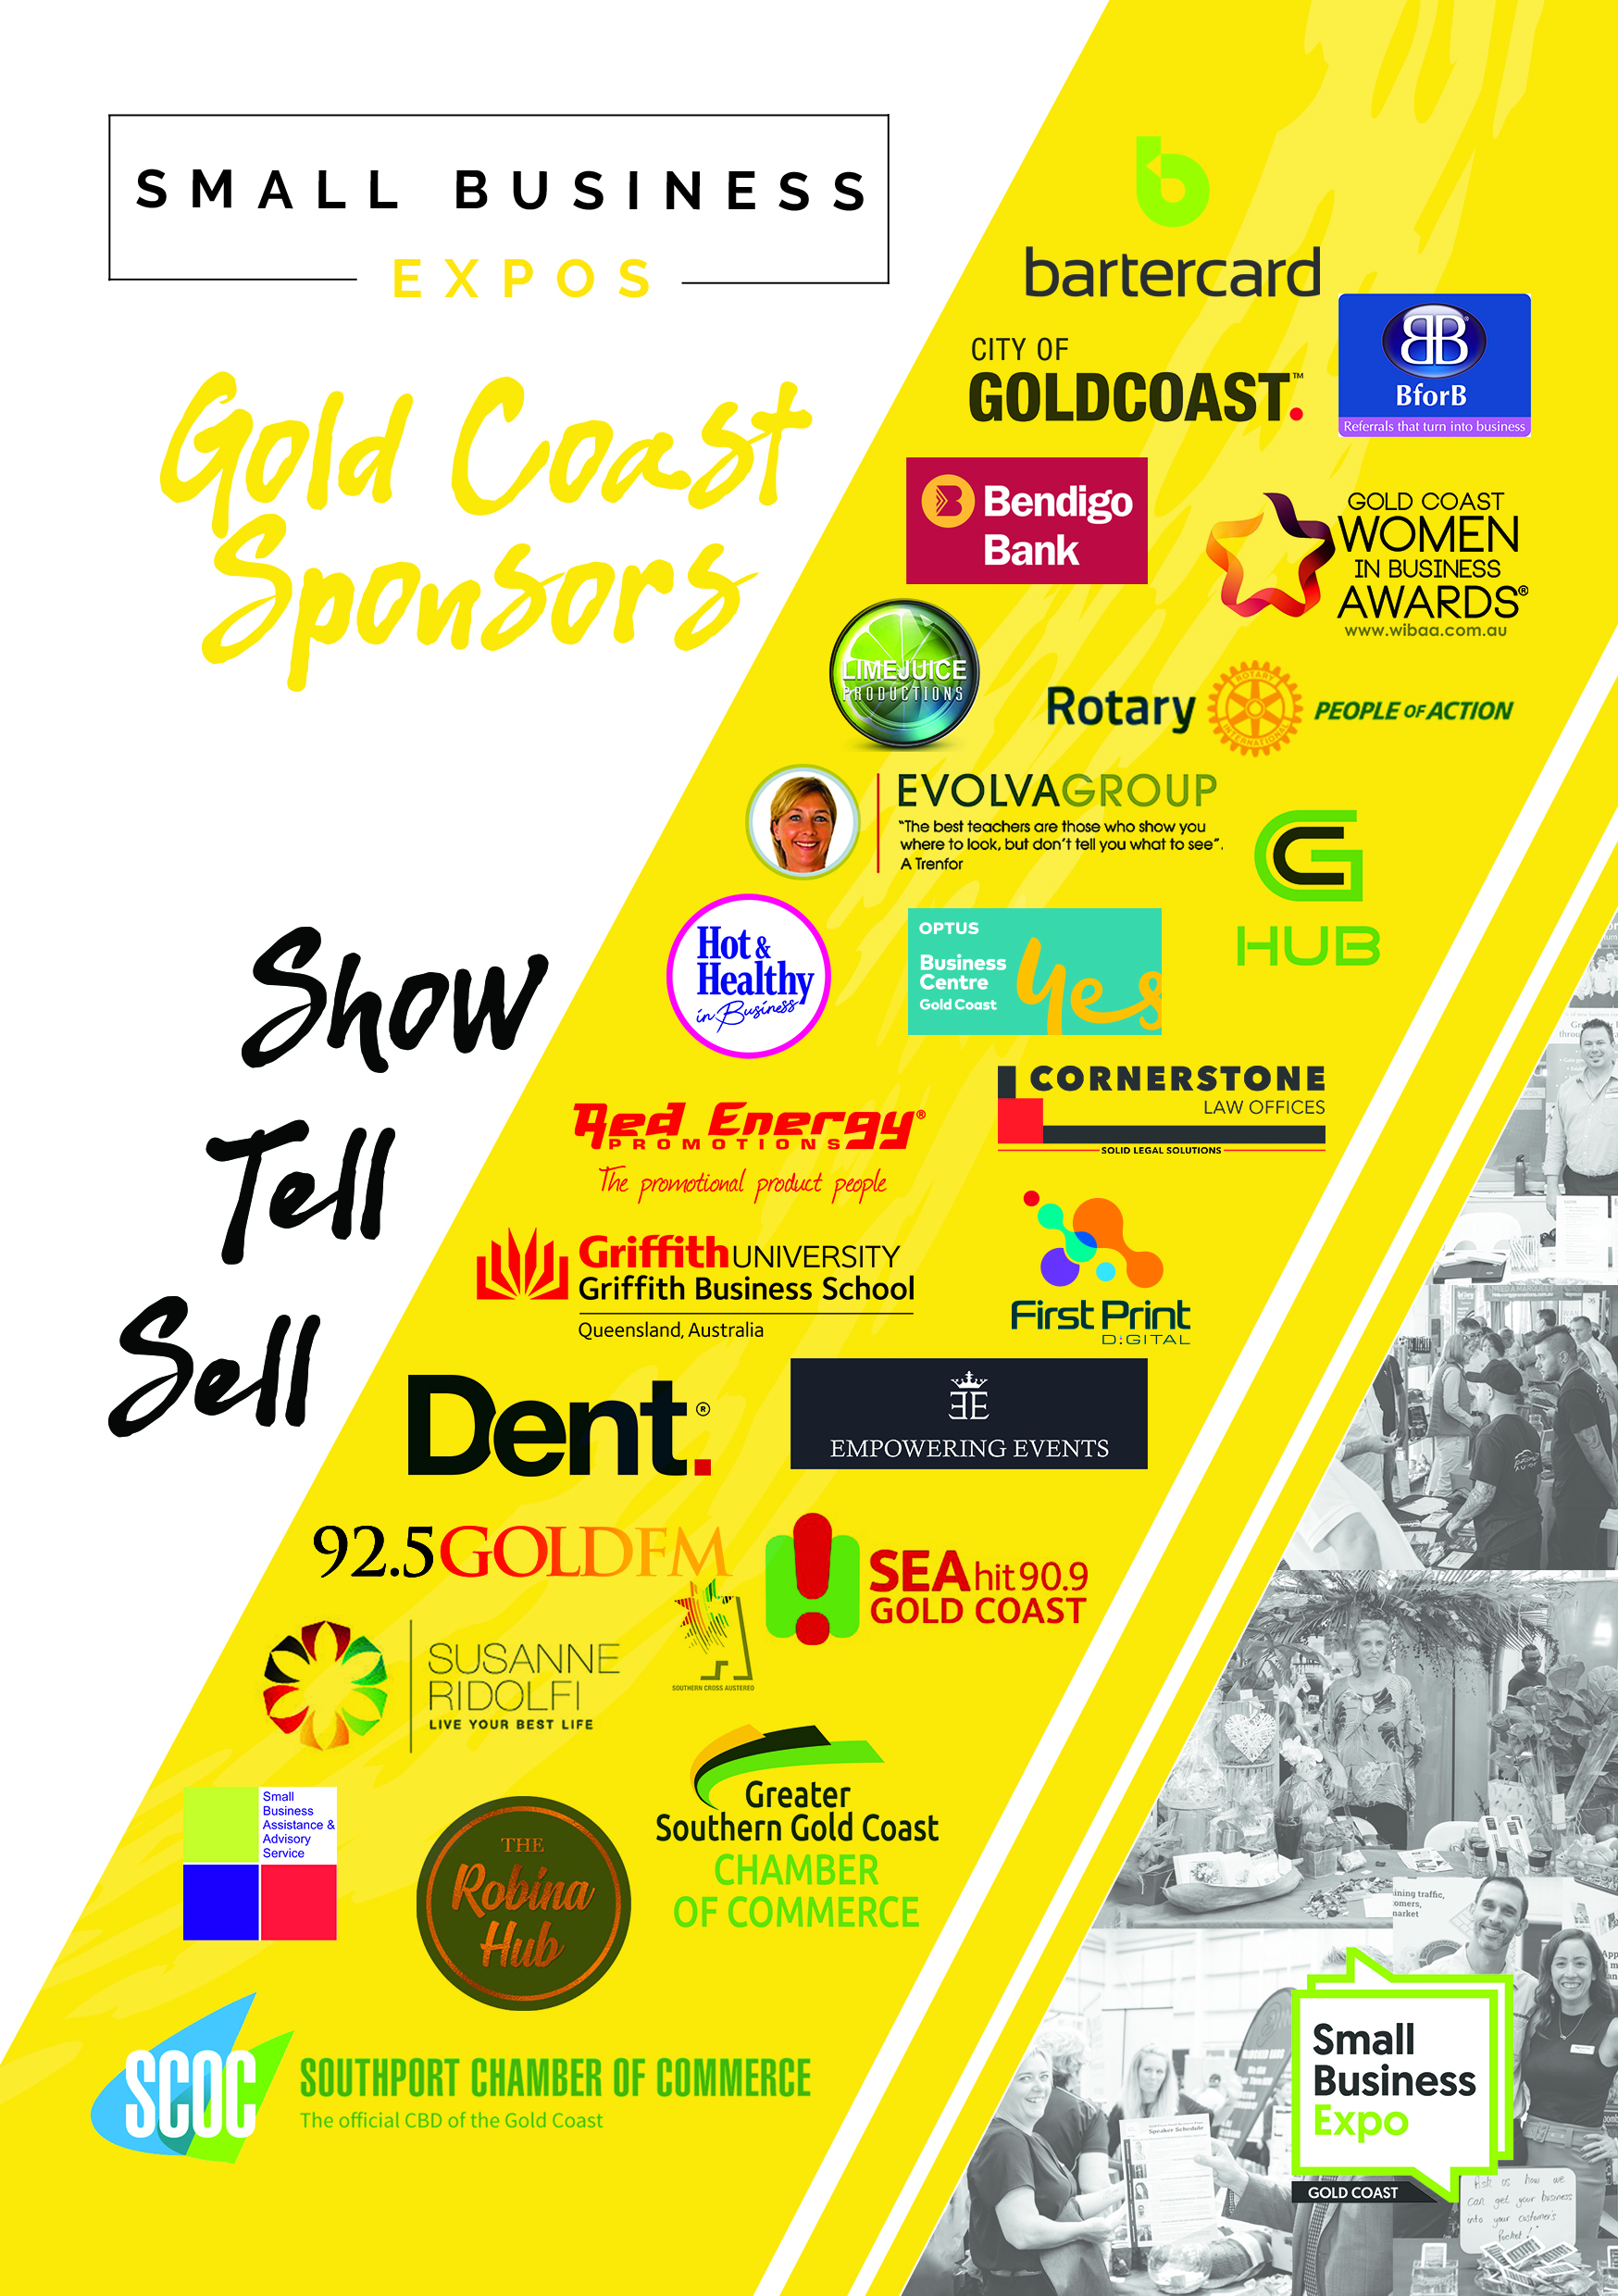 Business Expos | Brisbane | Gold Coast | Small Business Expos | Gc A5 Flyer Back